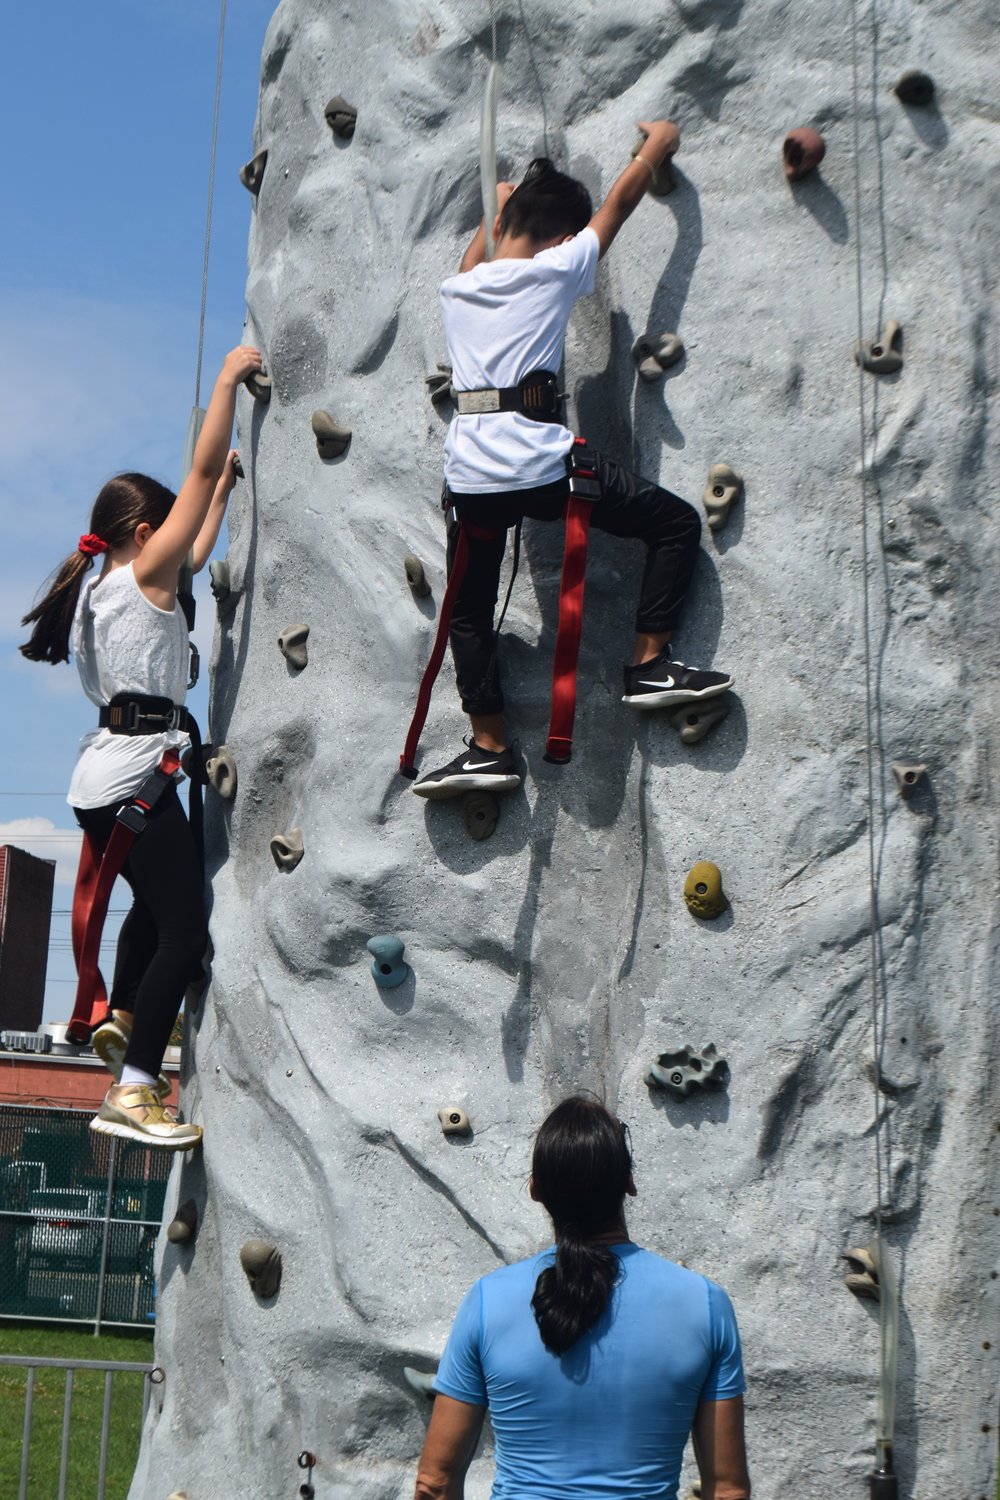 Leia Cohen, 10, and Benjamin Abramov, 7, showed their climbing skills on the rock wall.